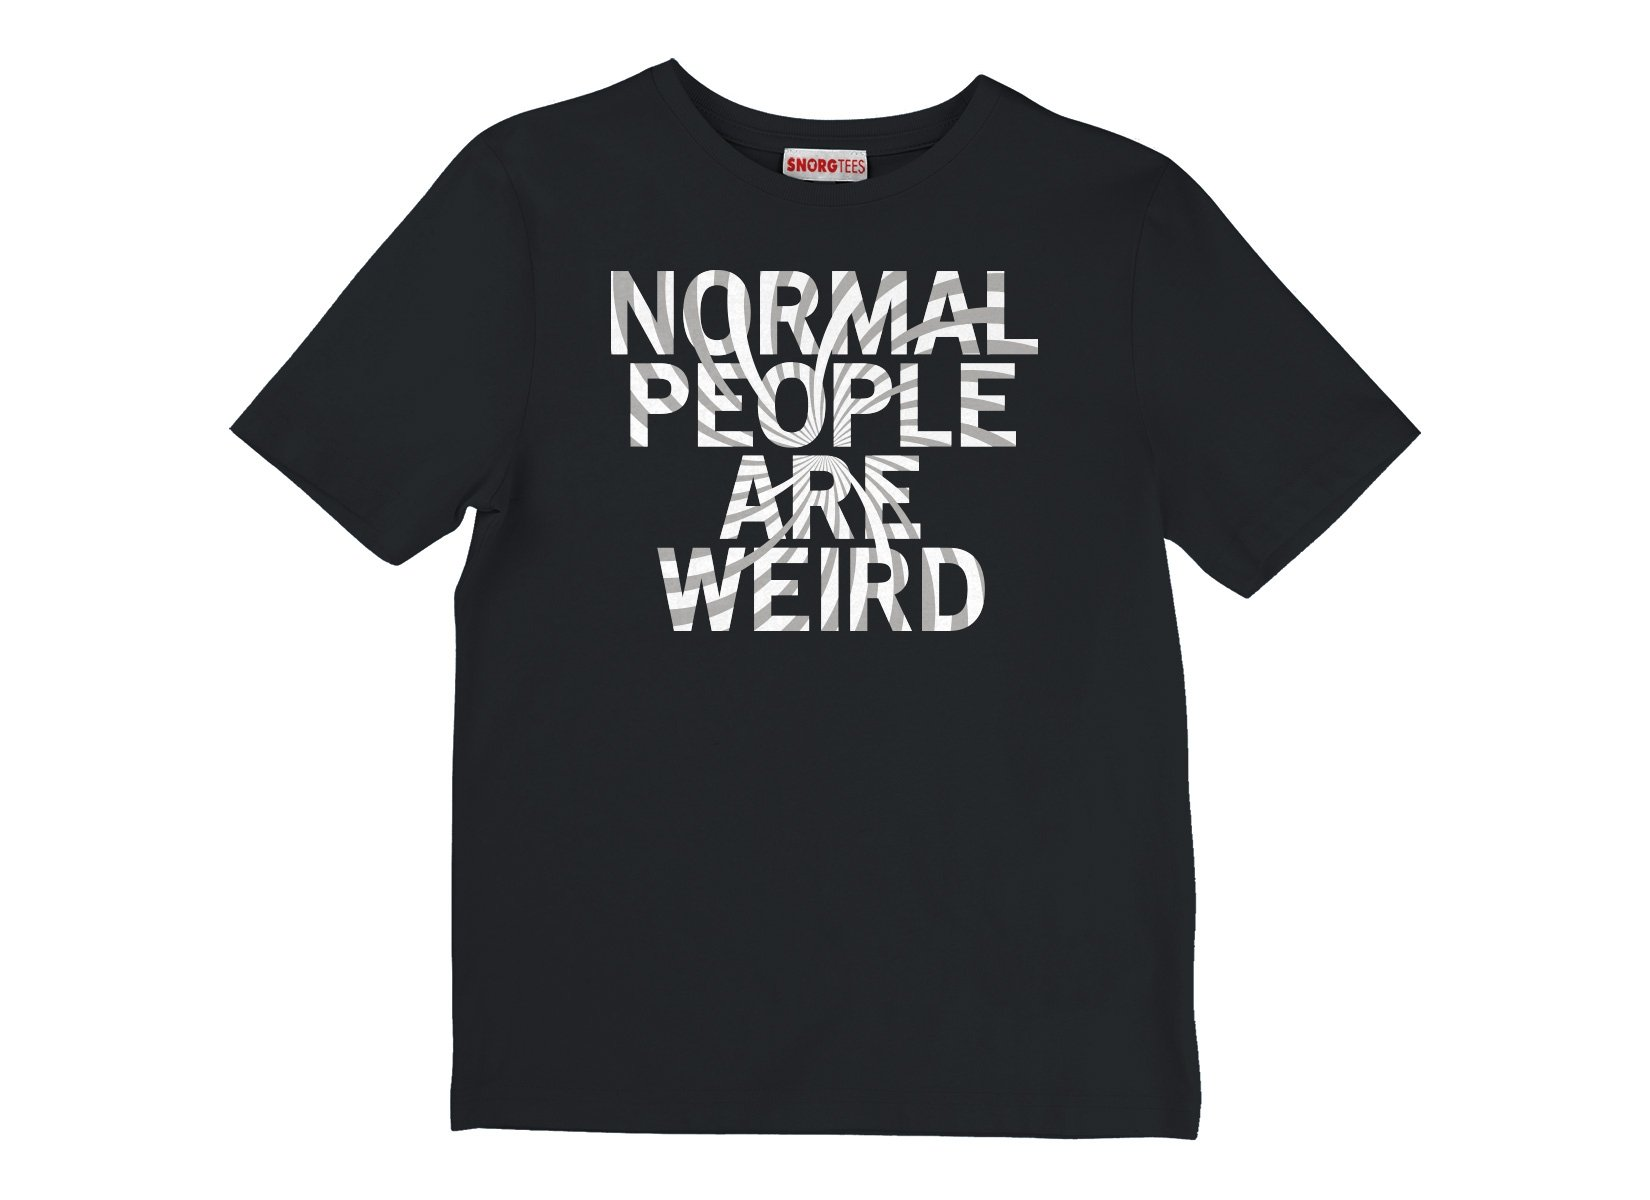 Normal People Are Weird on Kids T-Shirt